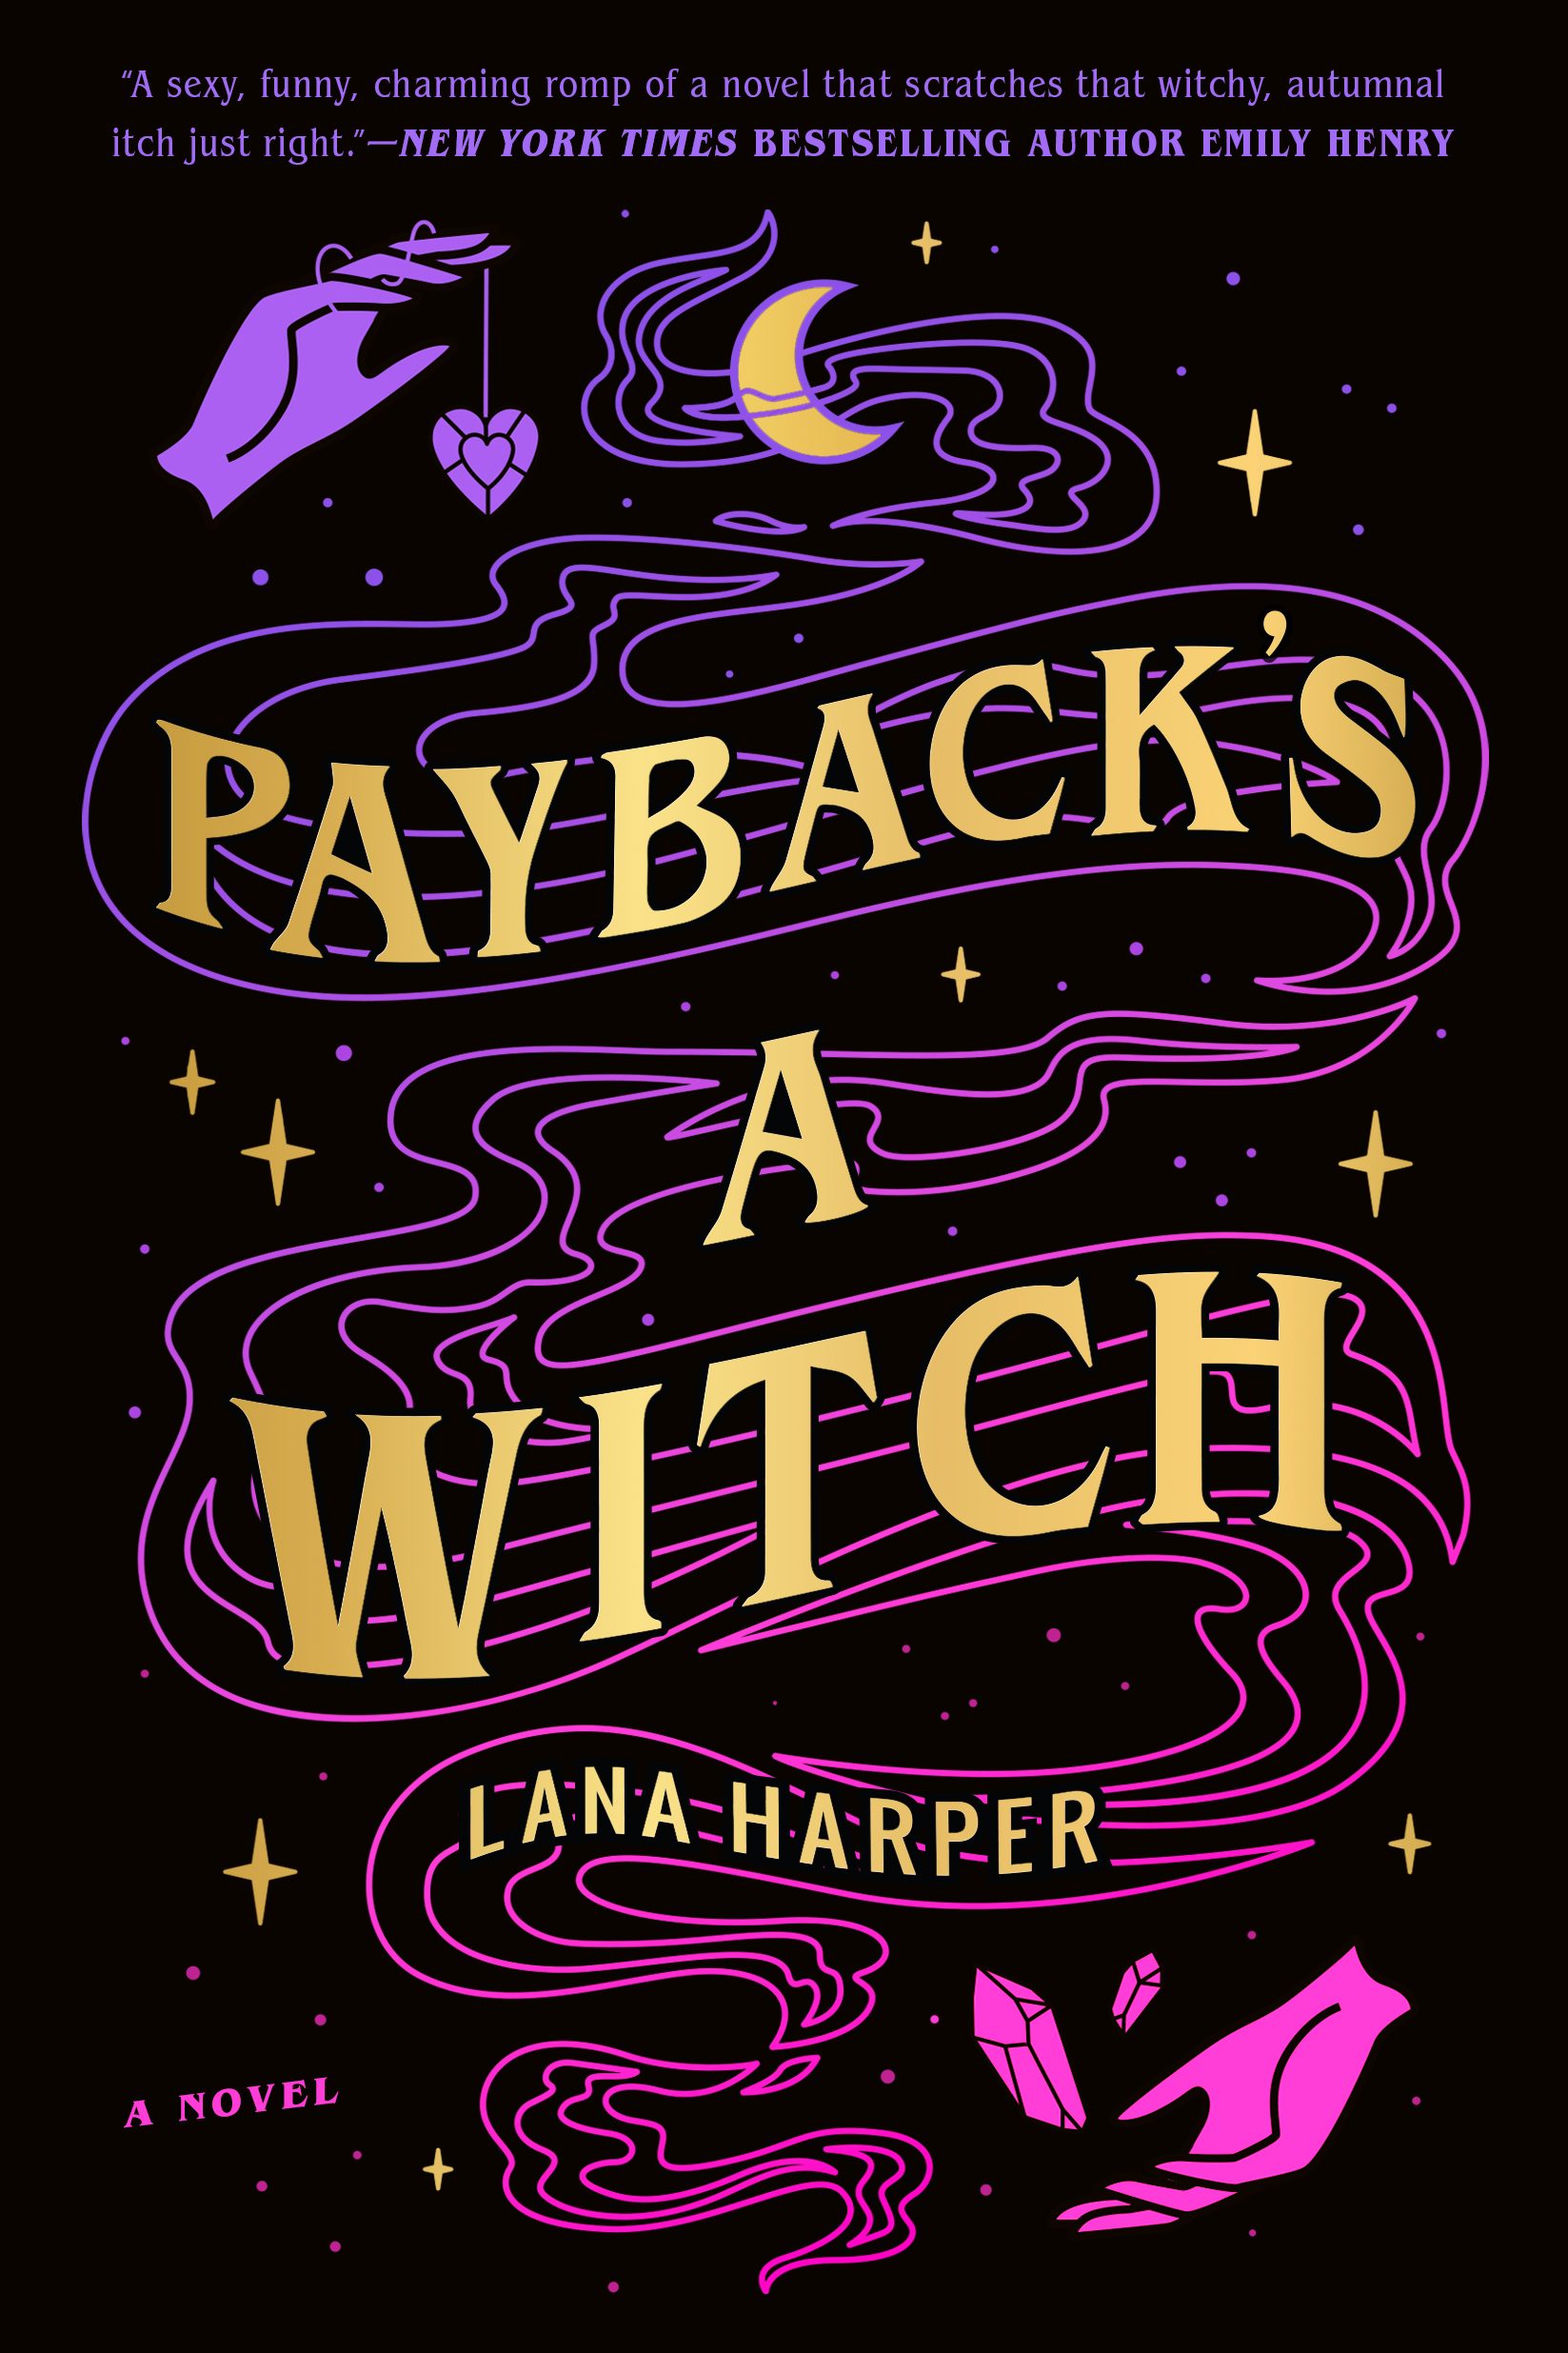 Paybacks a witch book cover with hands, crystals, and a moon